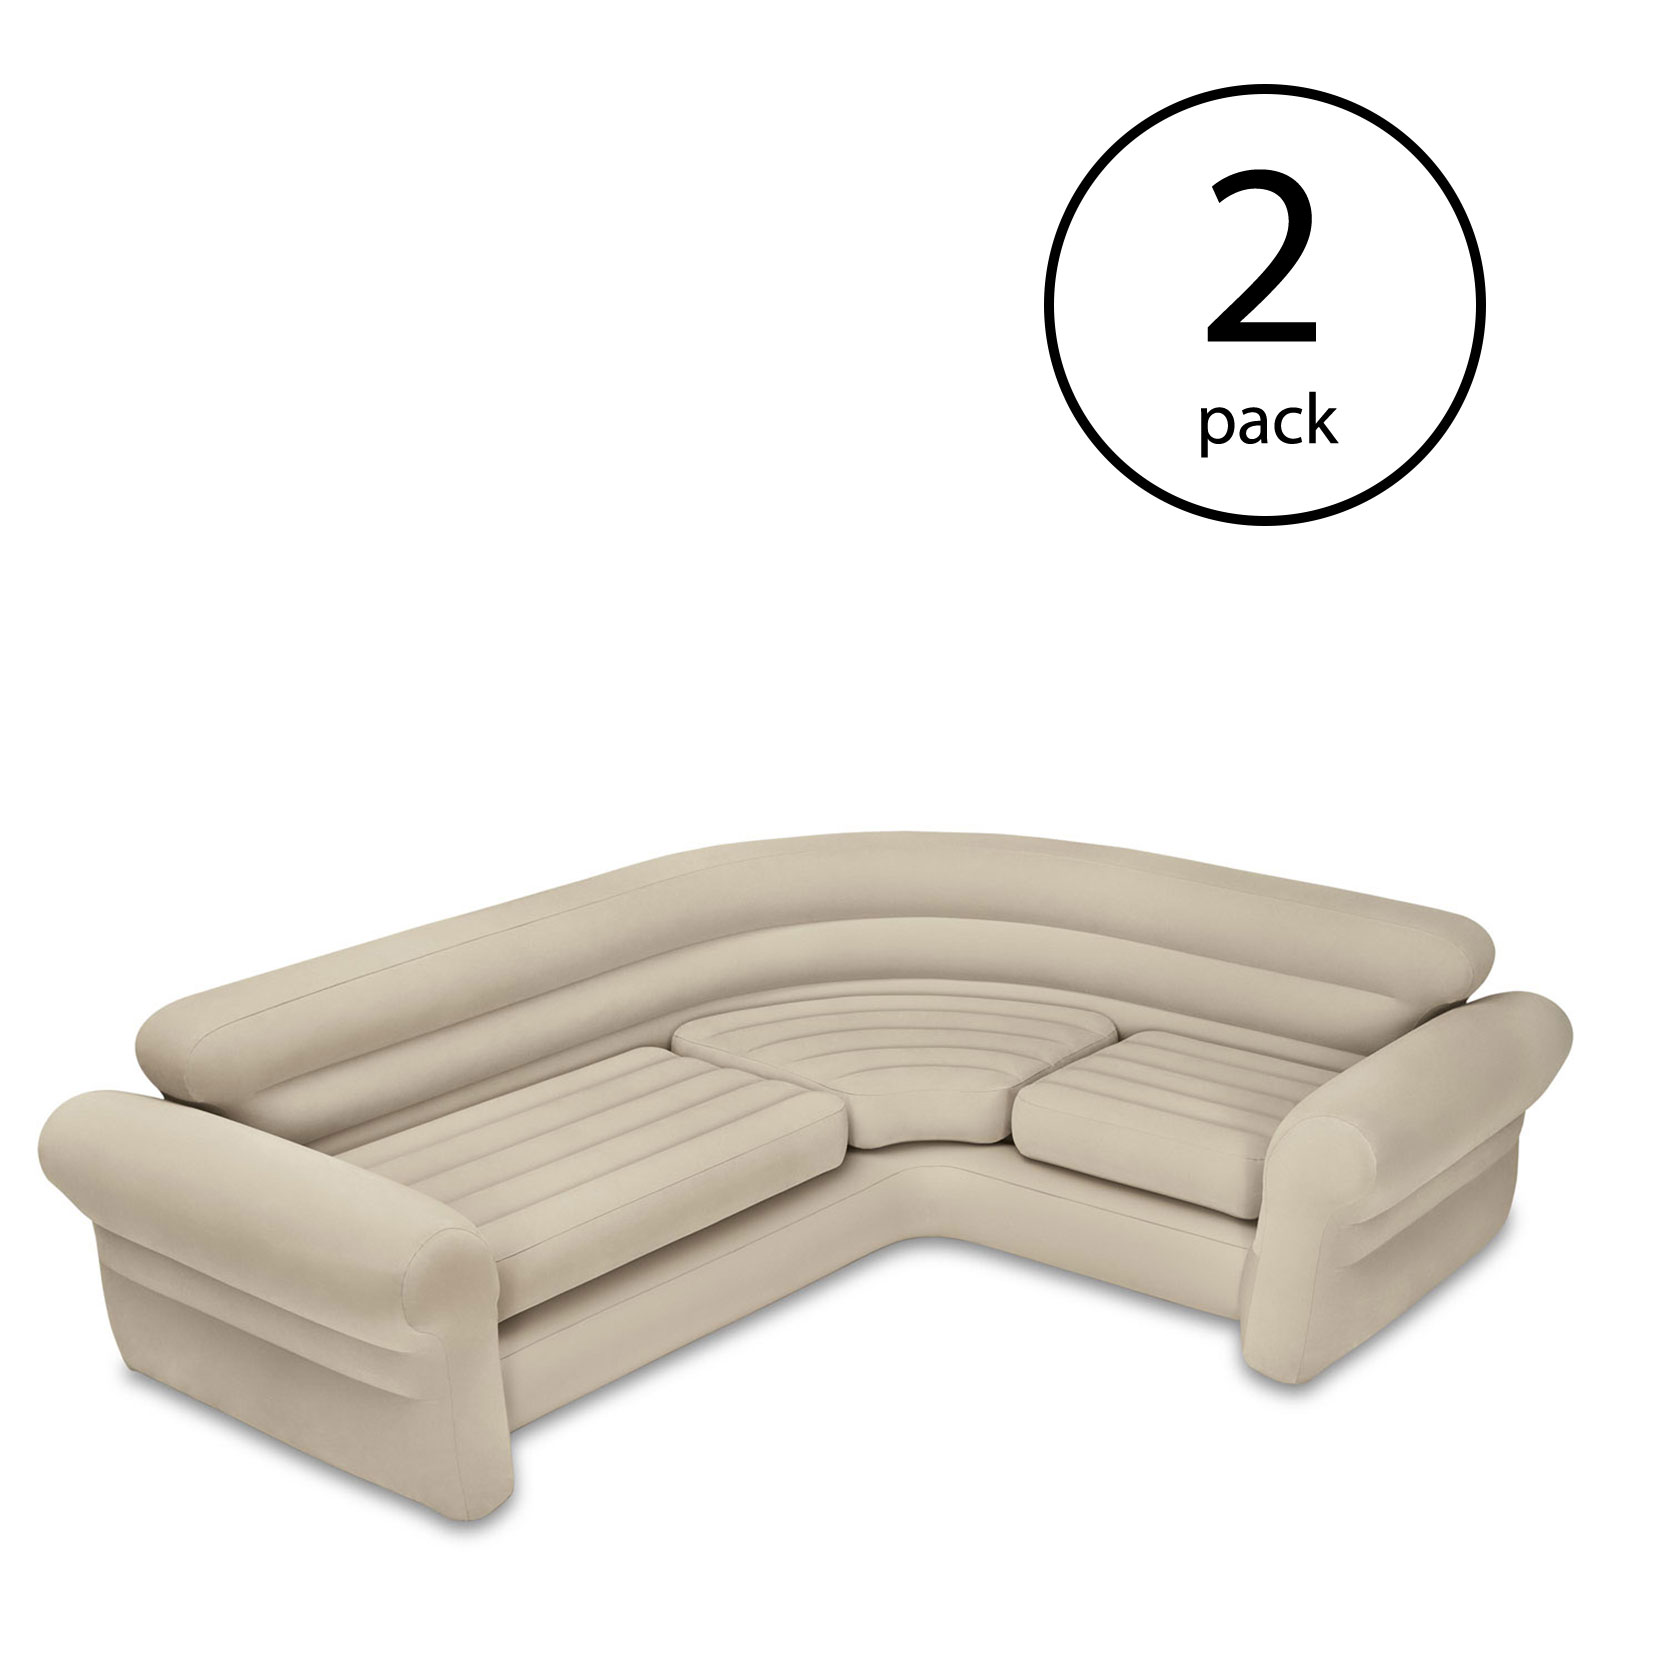 Intex Inflatable Corner Living Room Neutral Sectional Sofa 68575EP (2 Pack)